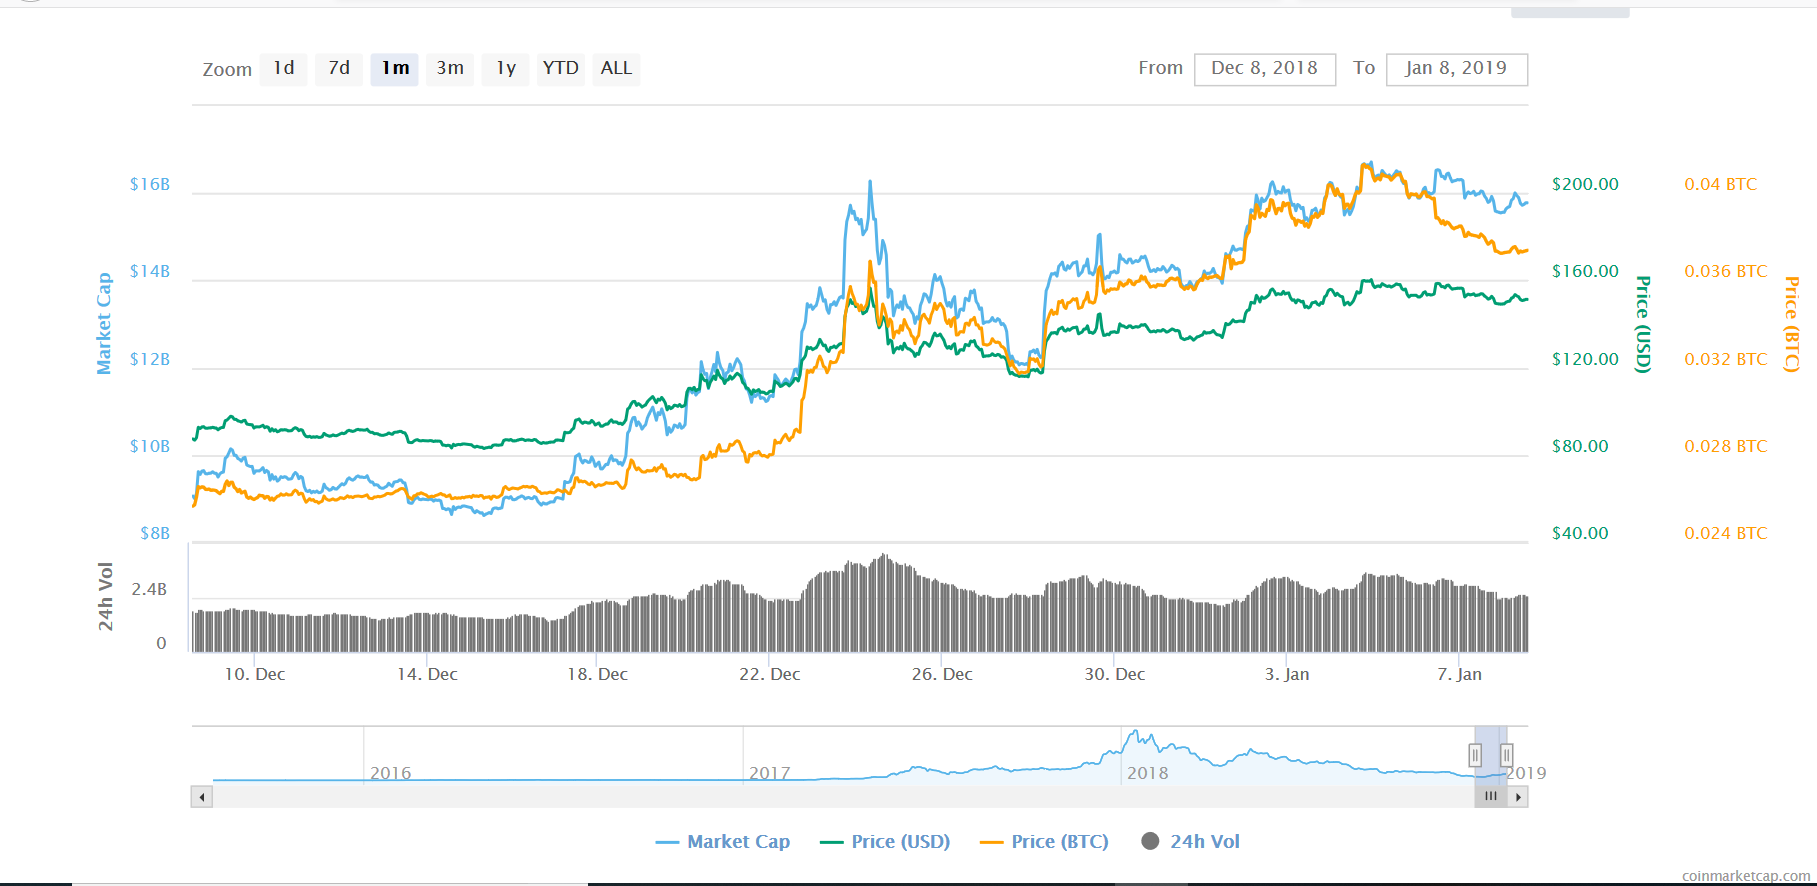 Ethereum posts gains leading into 2019